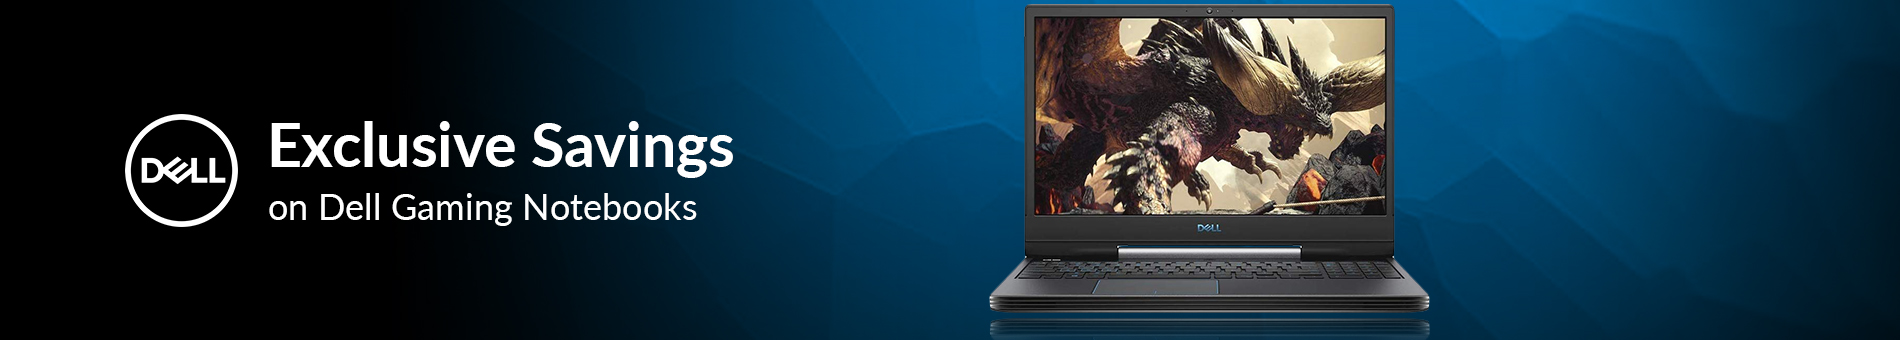 Dell Gaming Notebooks Exclusive Savings  Banner 01